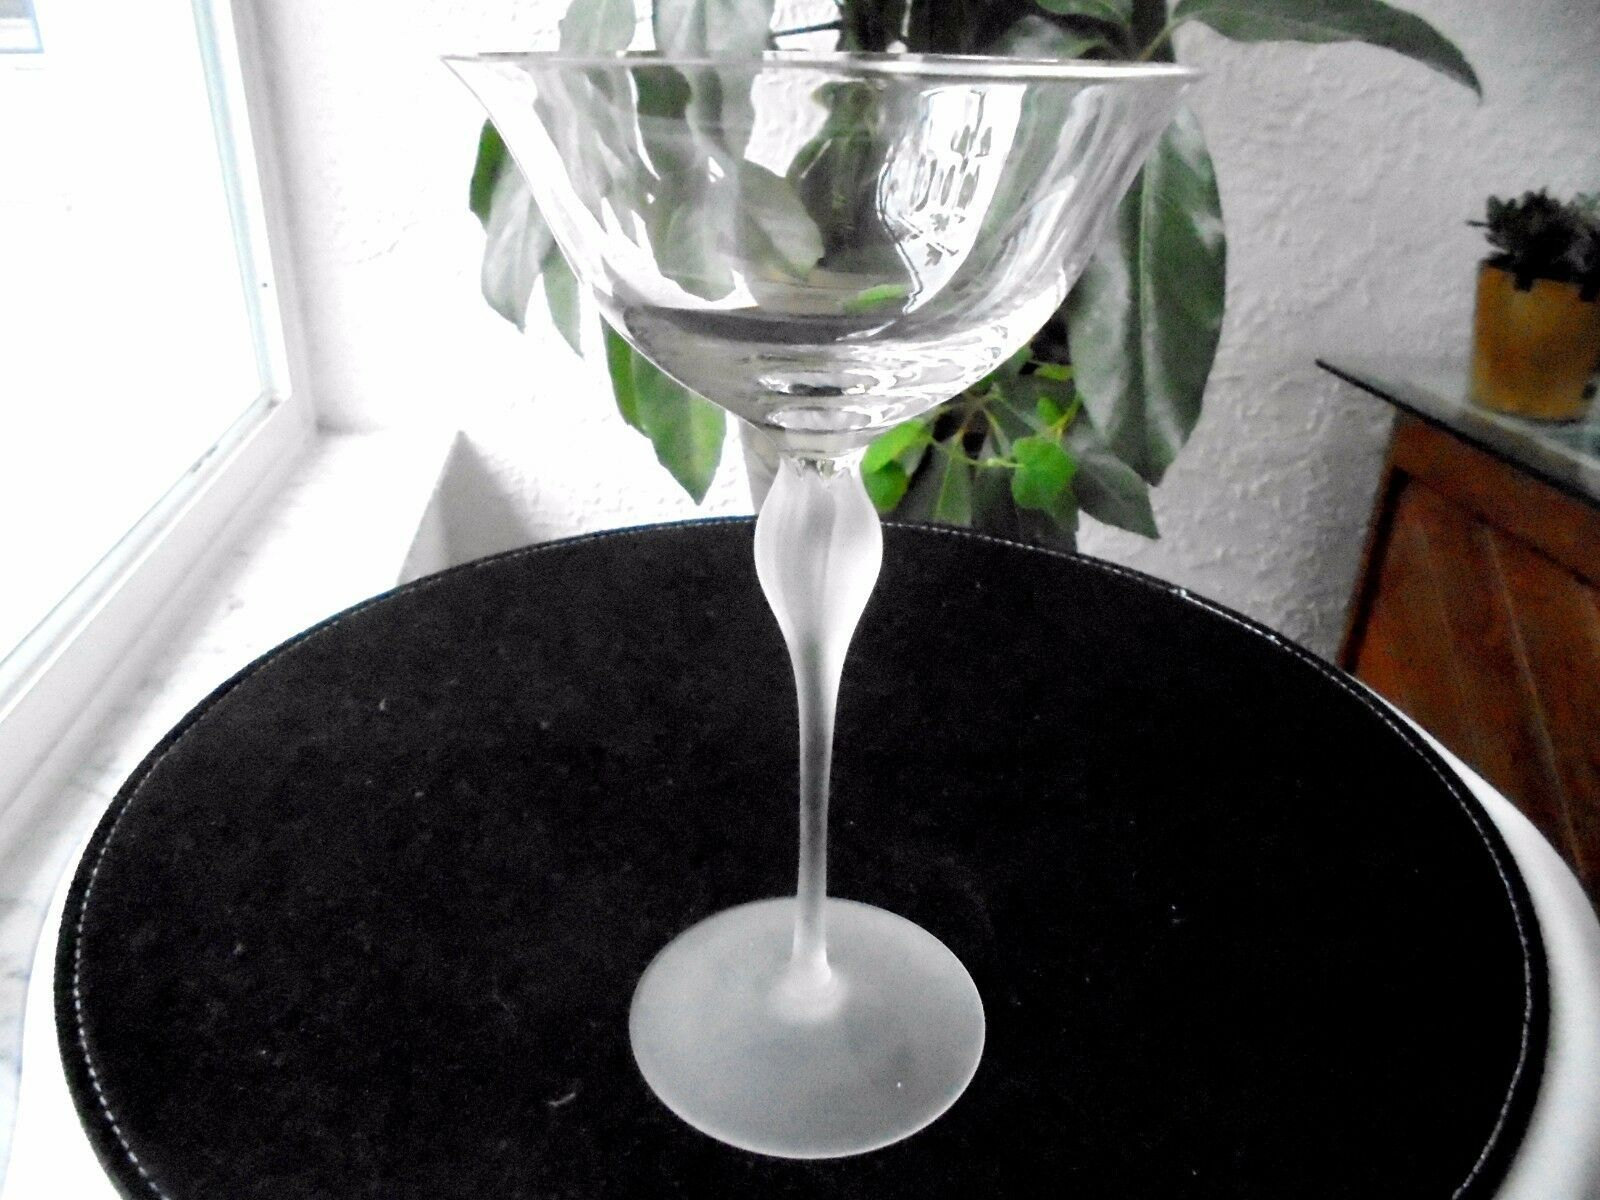 Mikasa Galleria Clear Crystal Champagne Glass 6 oz. Frosted Stem - $9.90